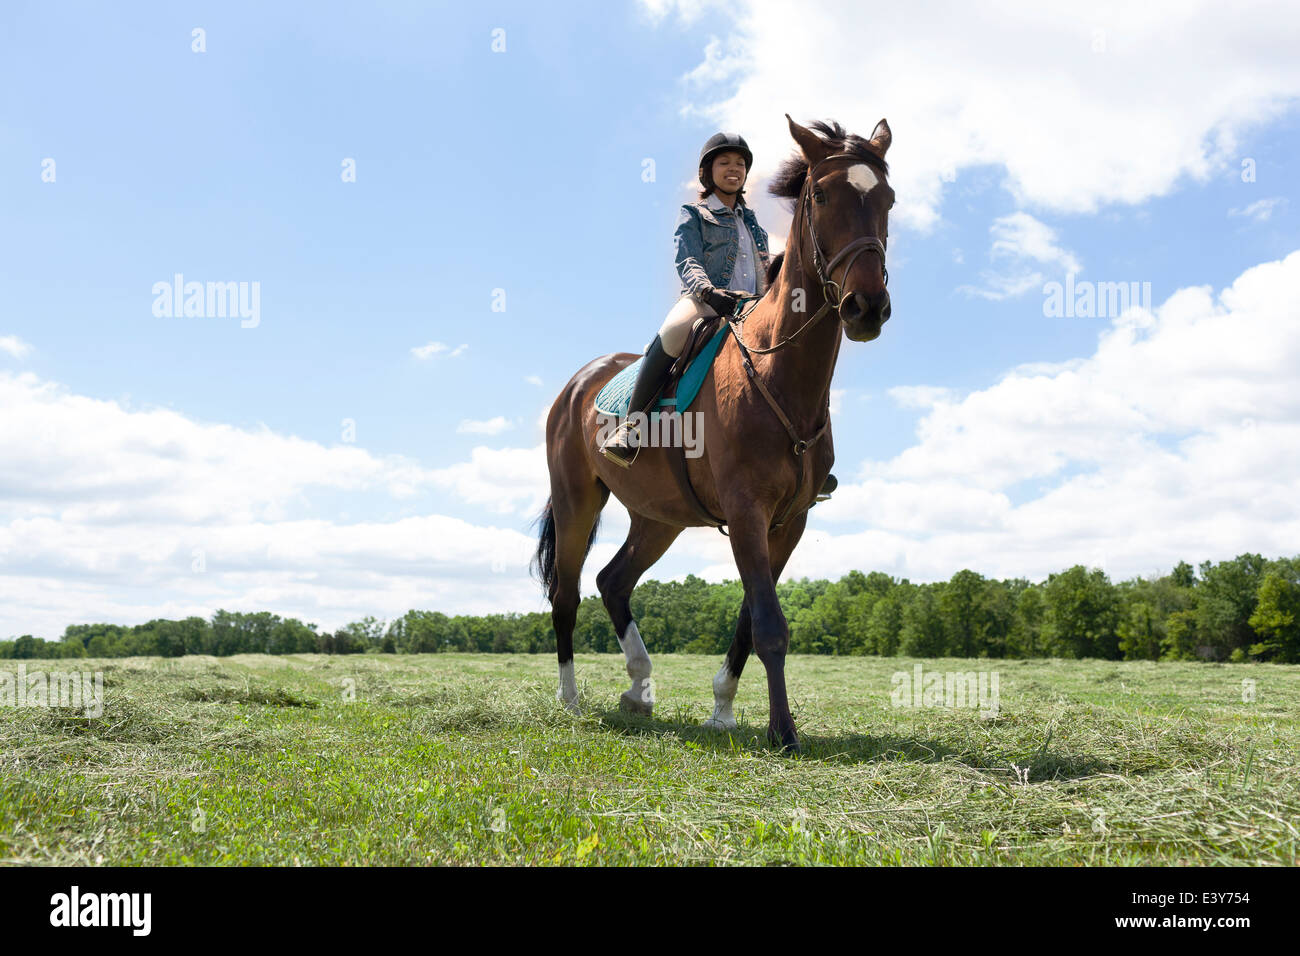 Horse rider on horse - Stock Image